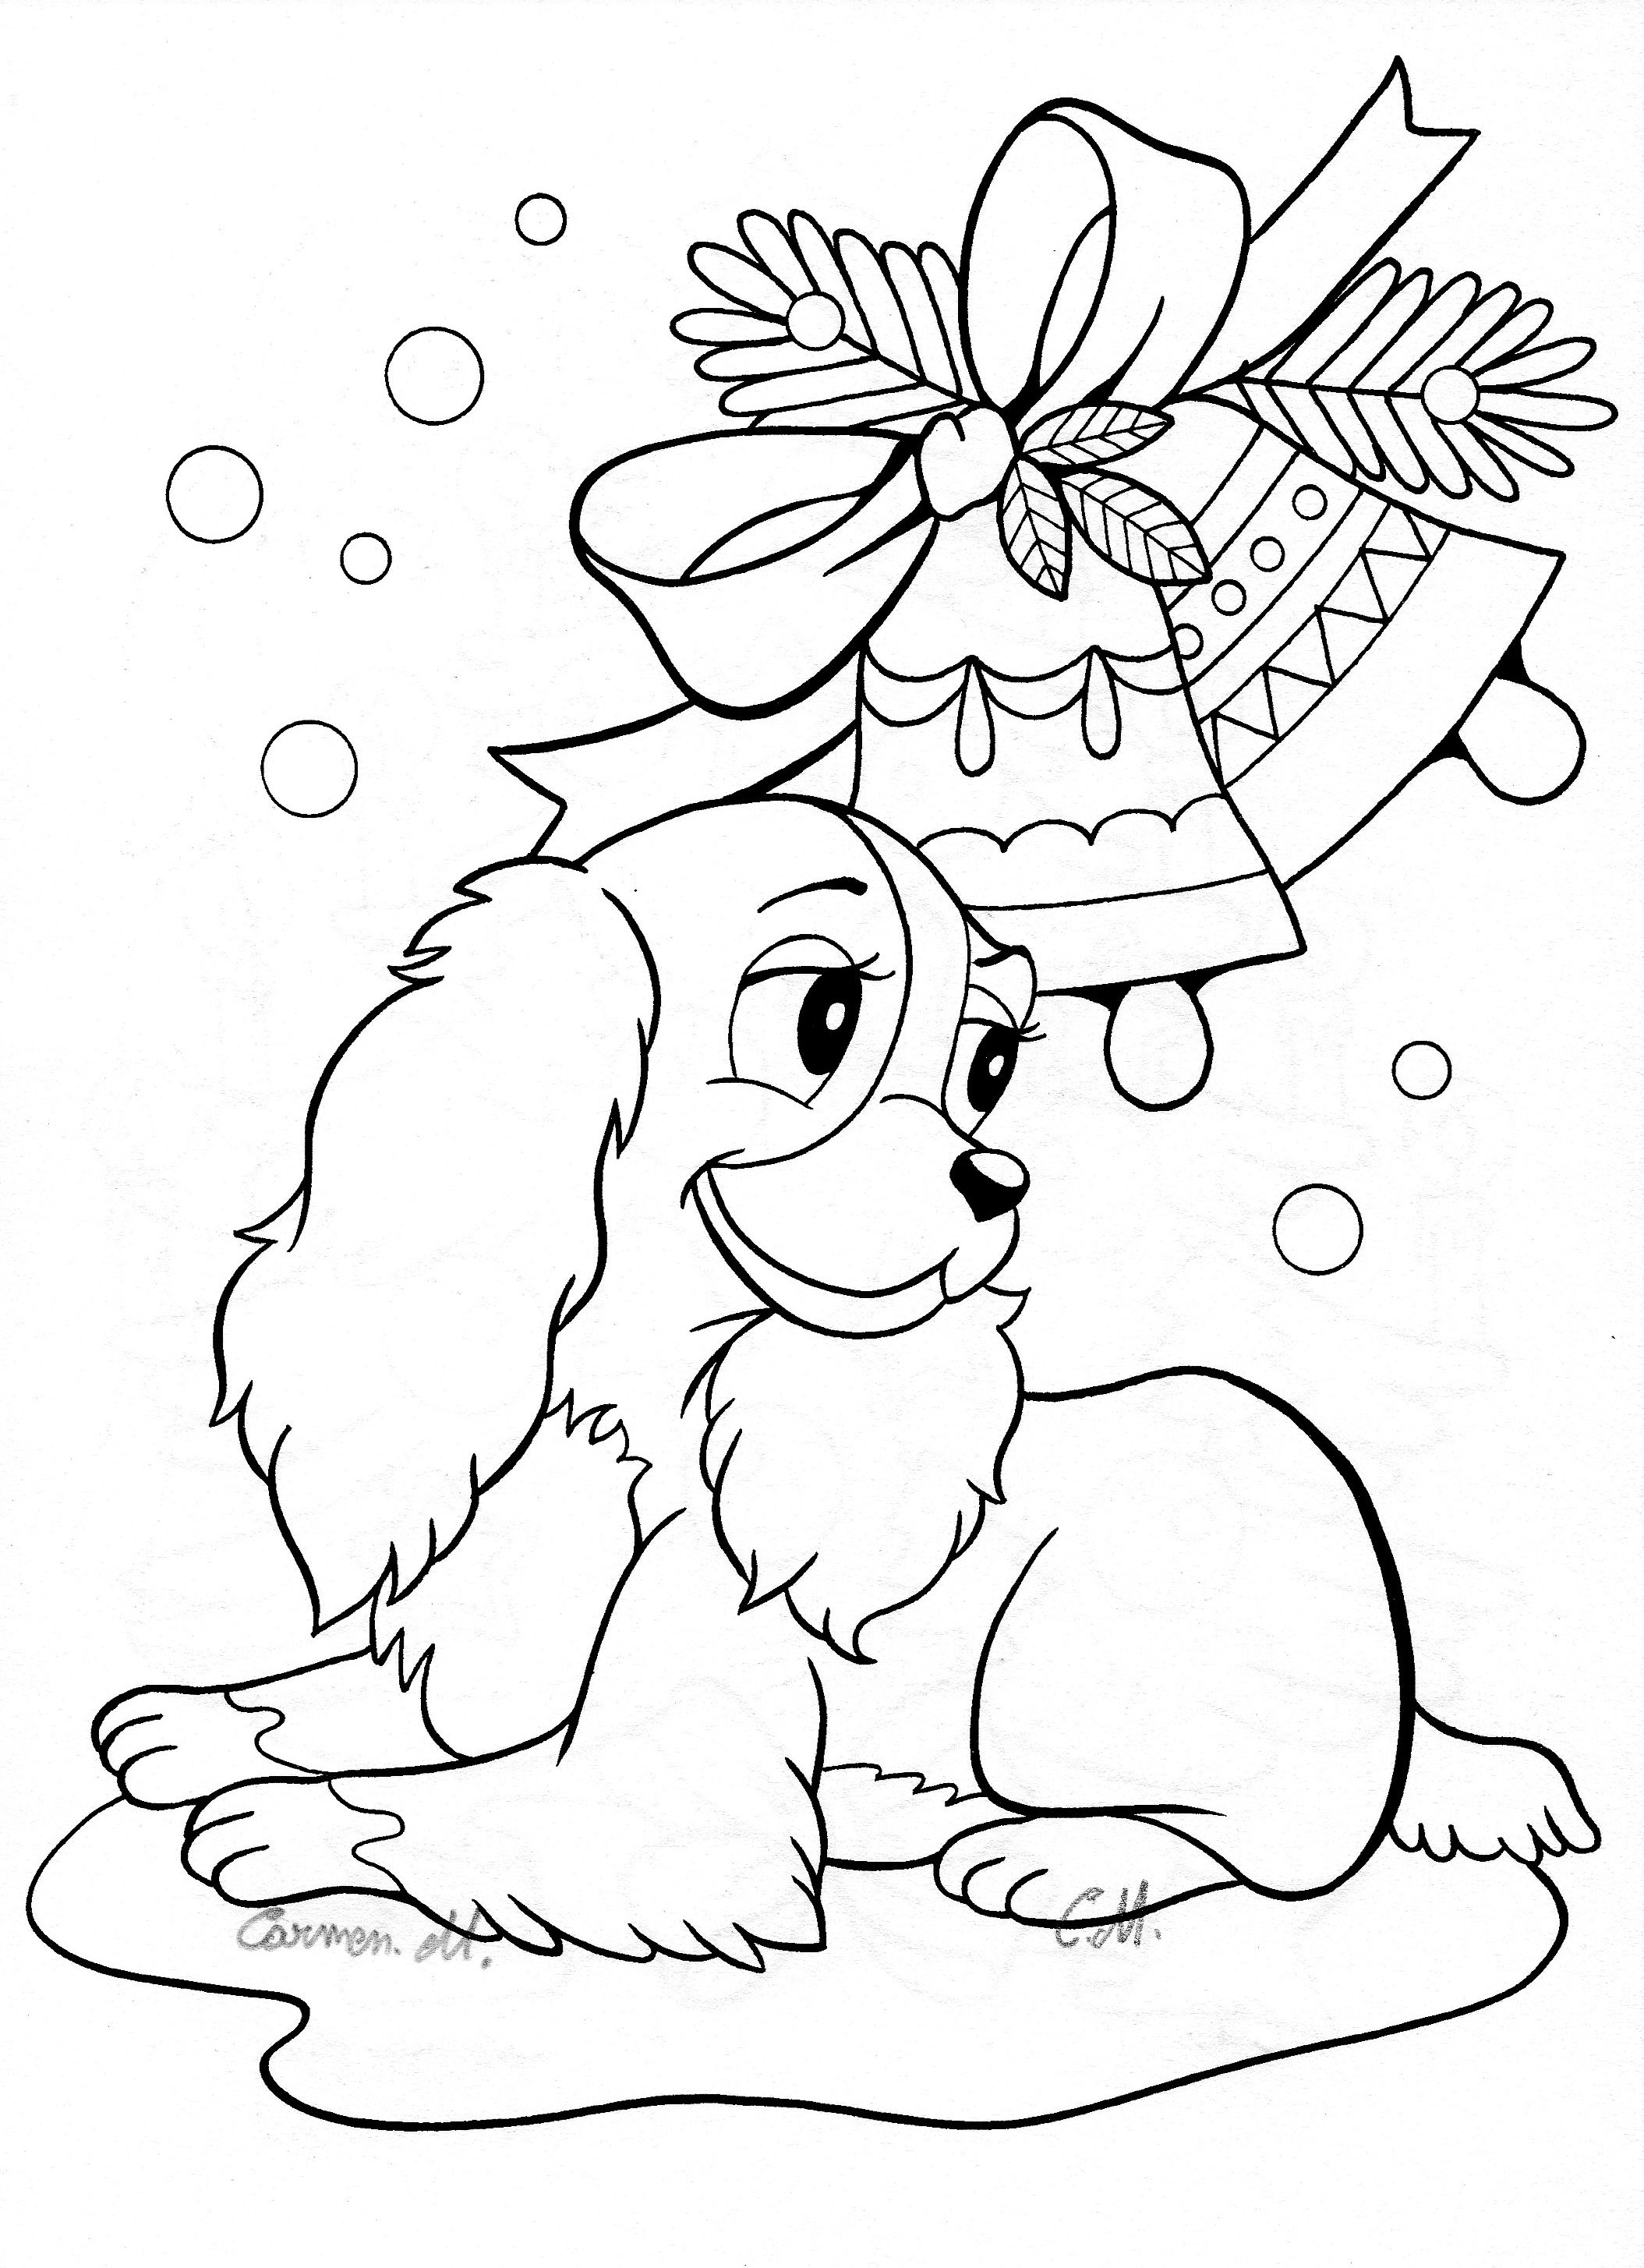 Lady And The Tramp Coloring Pages Disney Coloring Pages Lady And The ...